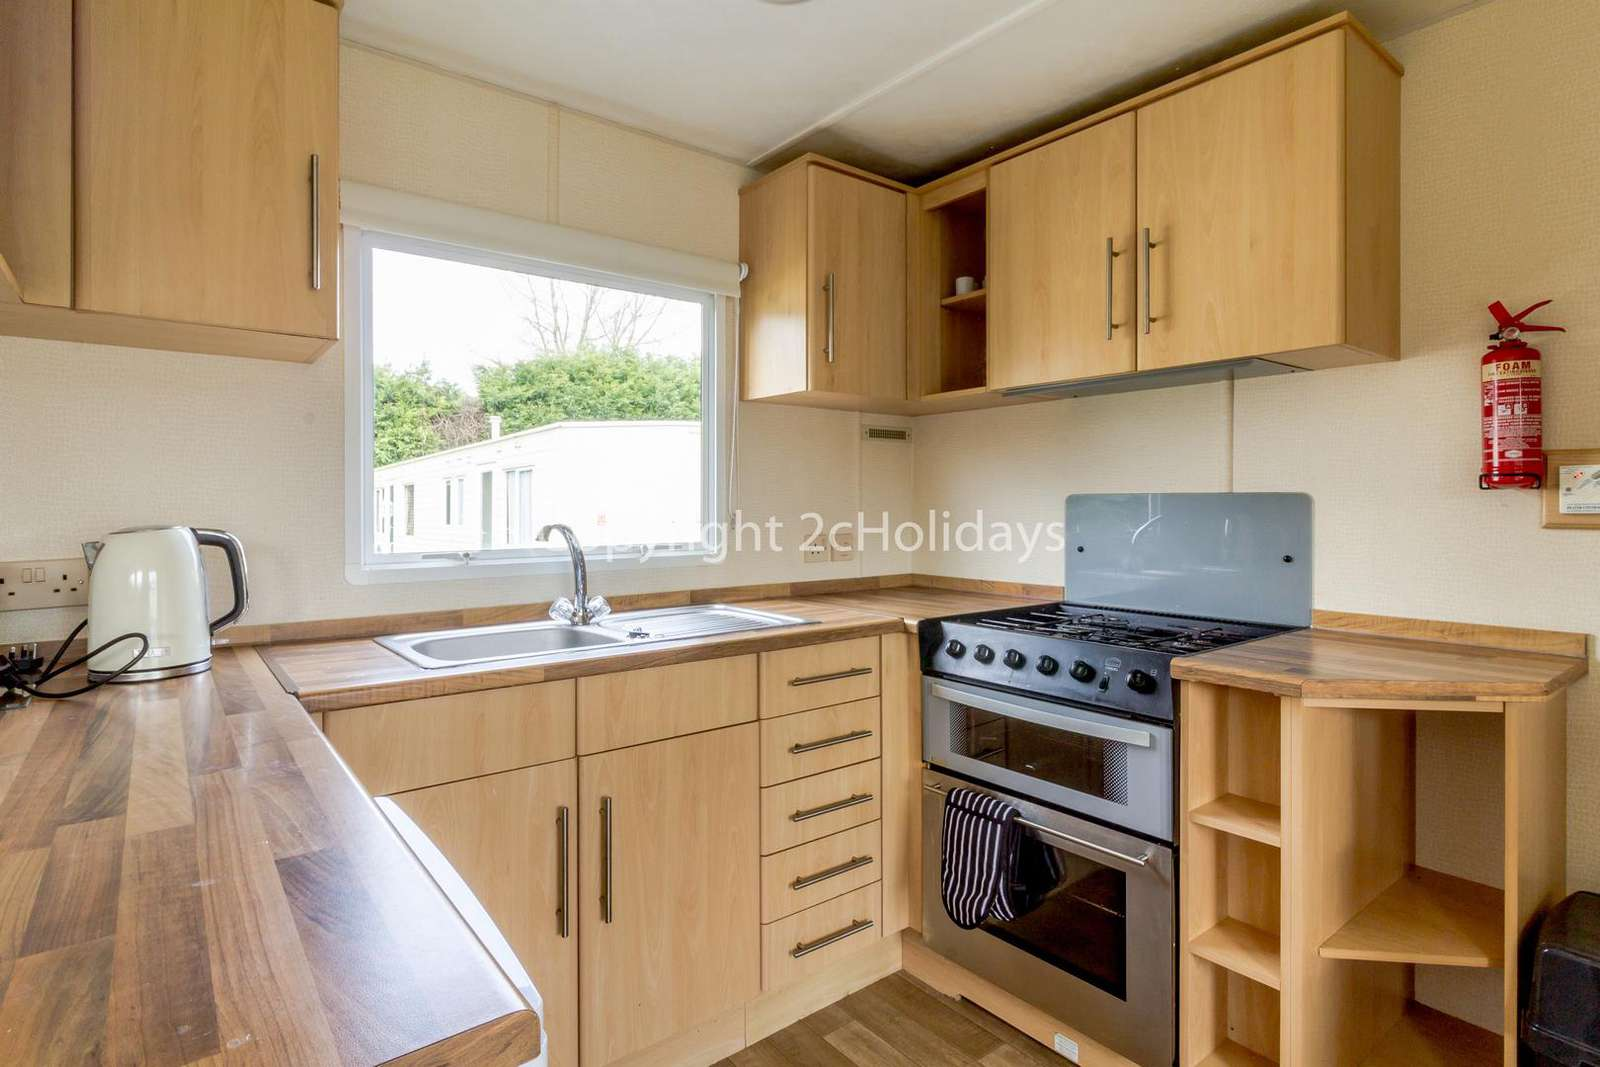 Modern, fully equipped kitchen!